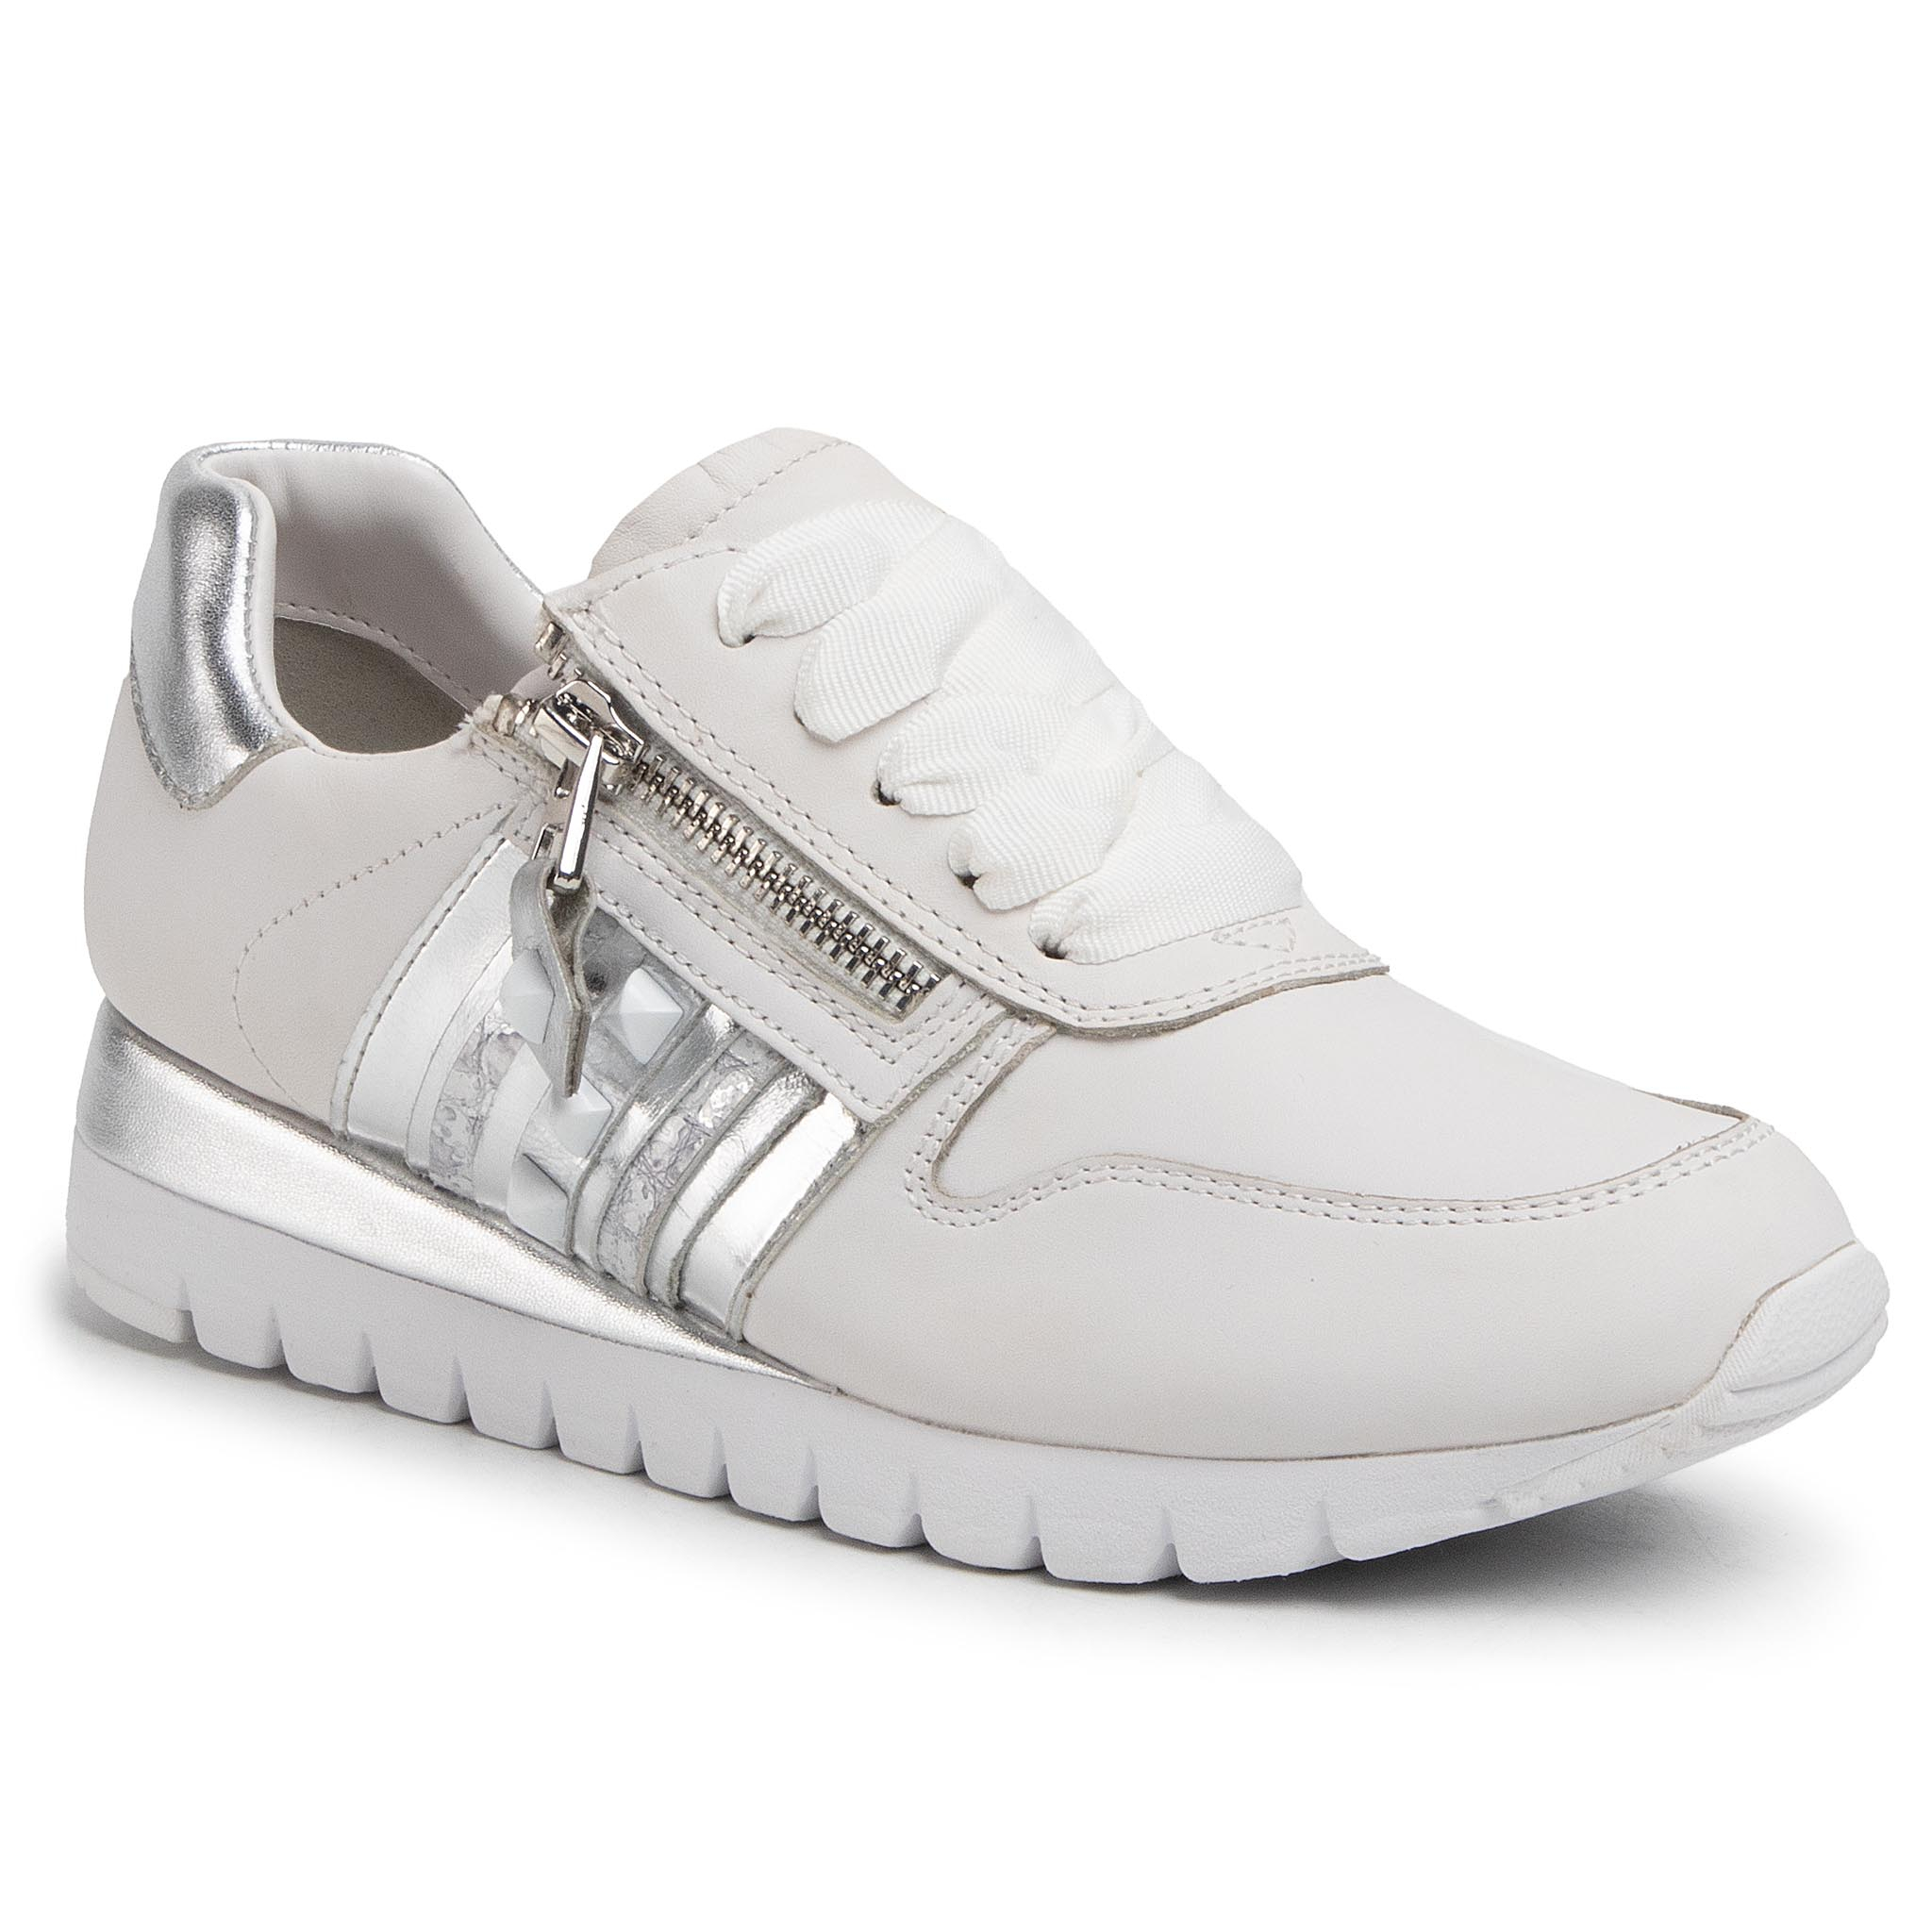 Sneakers CAPRICE - 9-23701-24 White/Silver 191